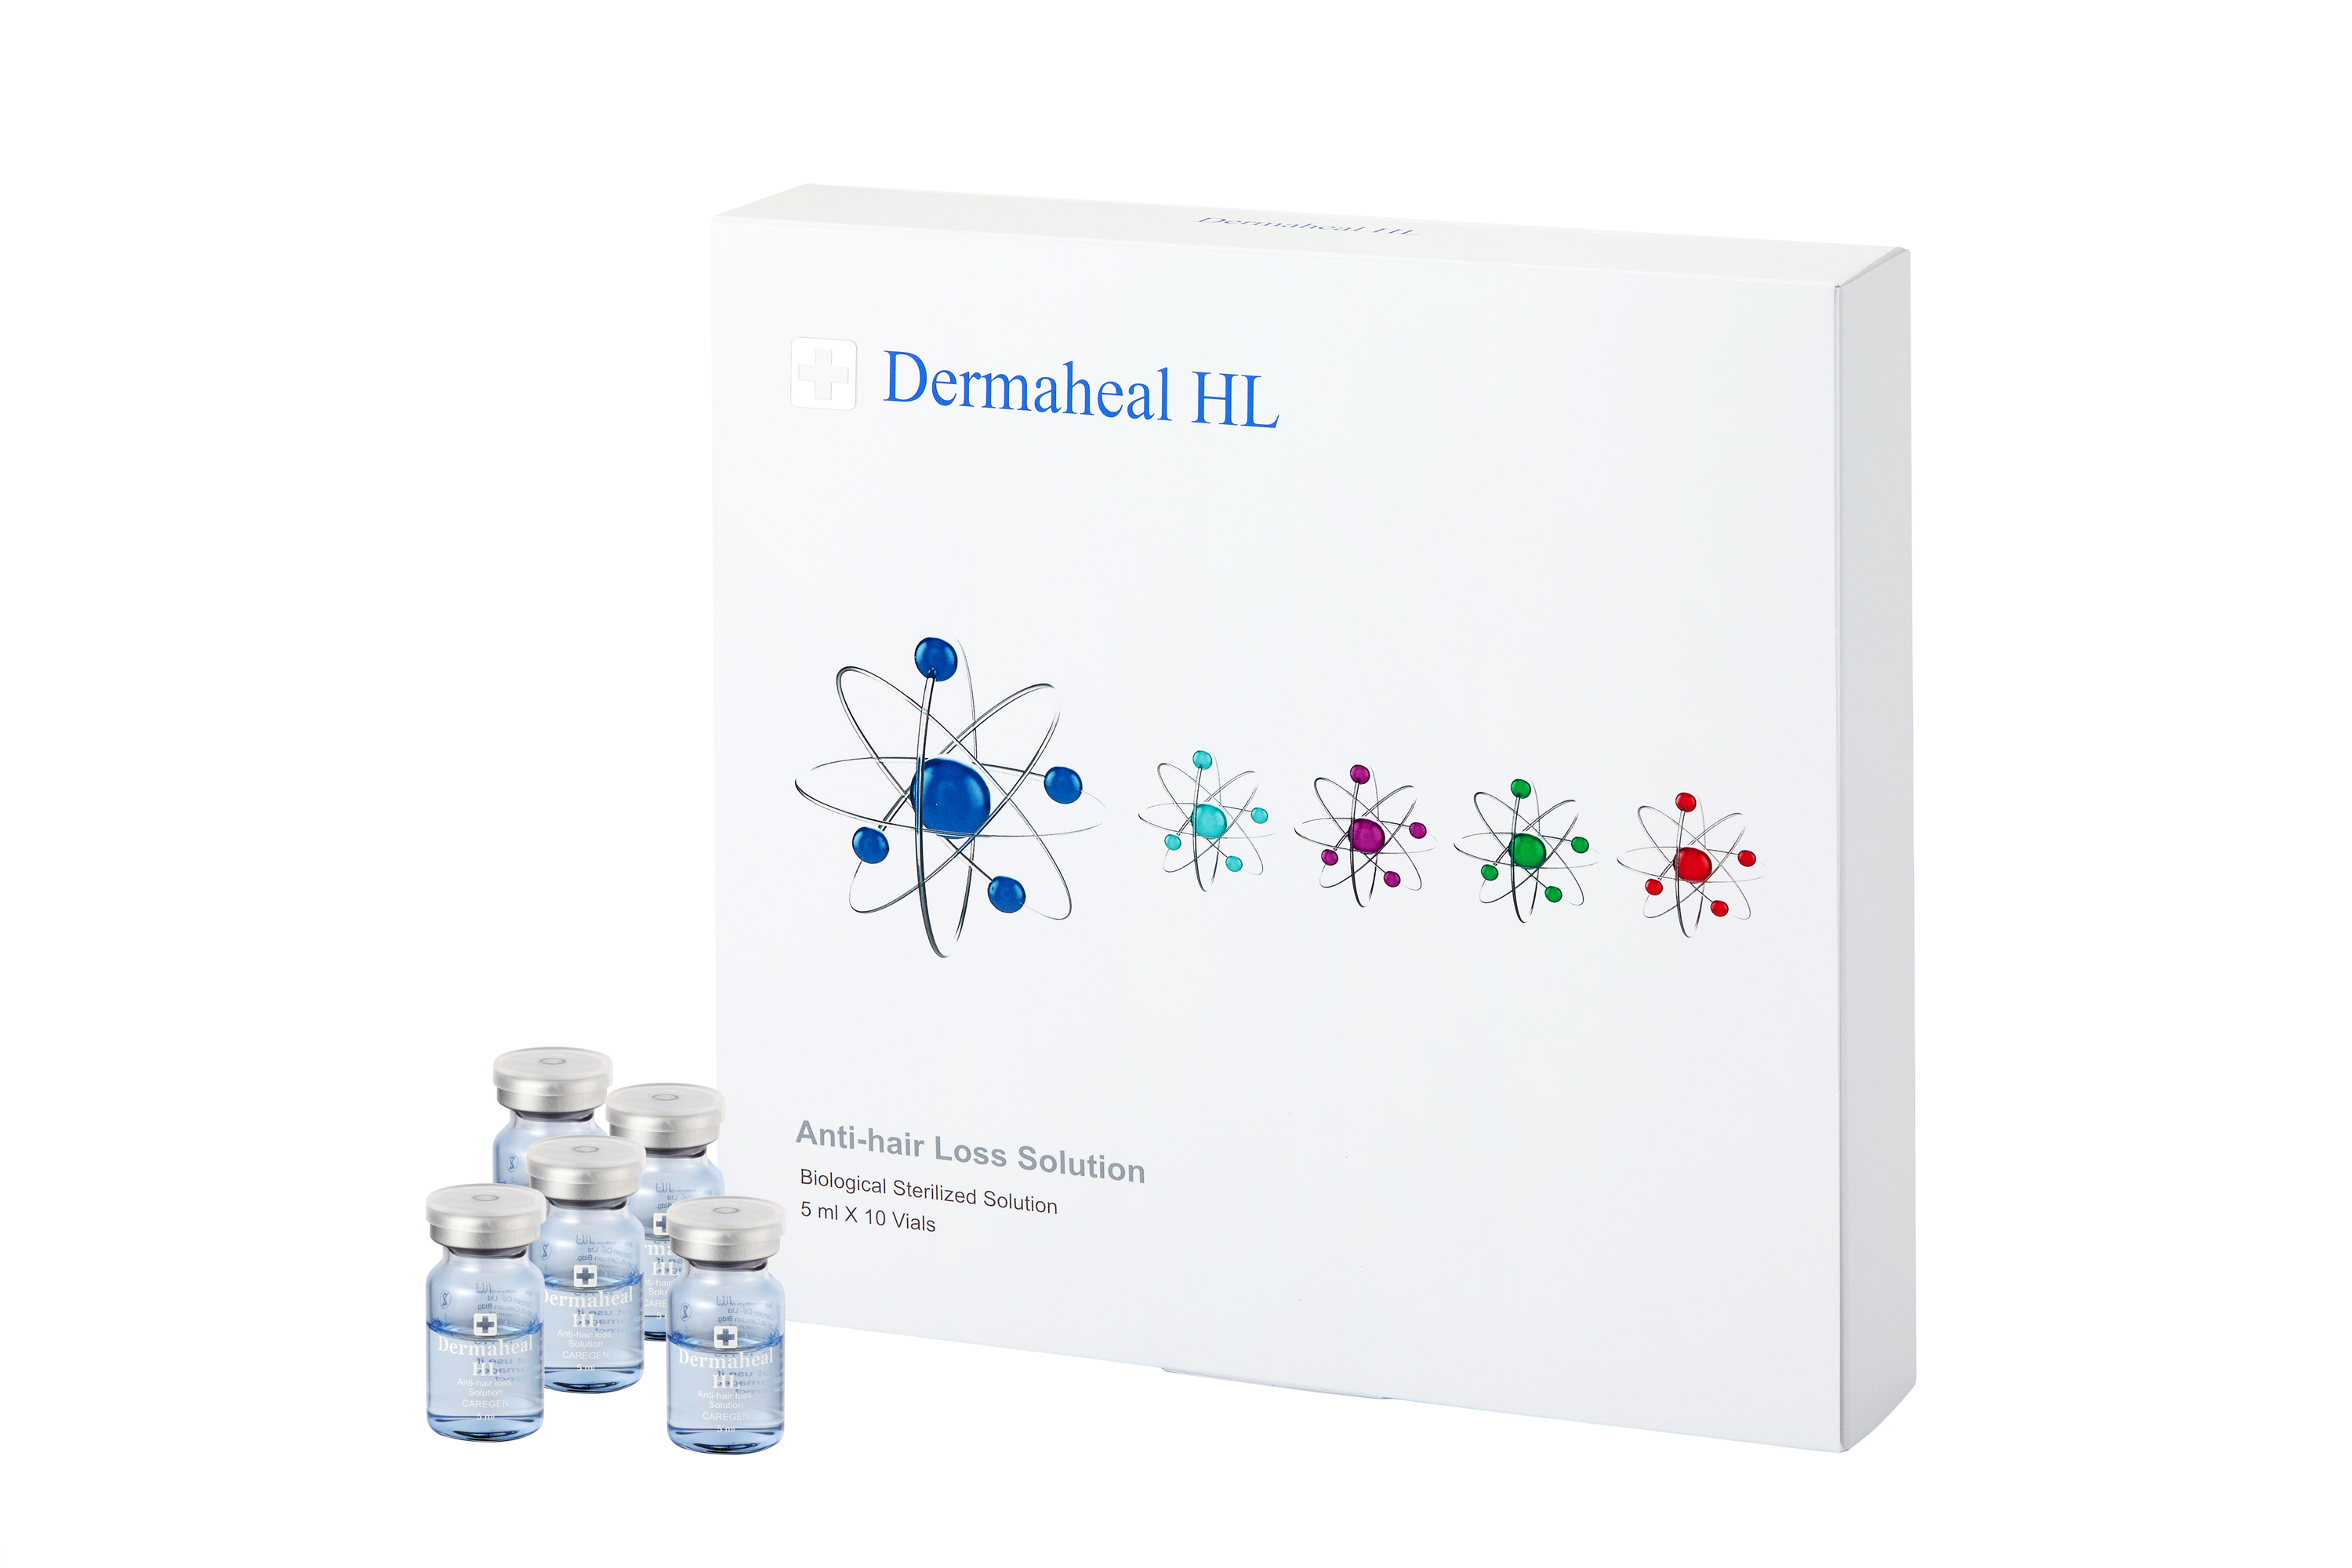 Dermaheal HL Anti-hair Loss Solution